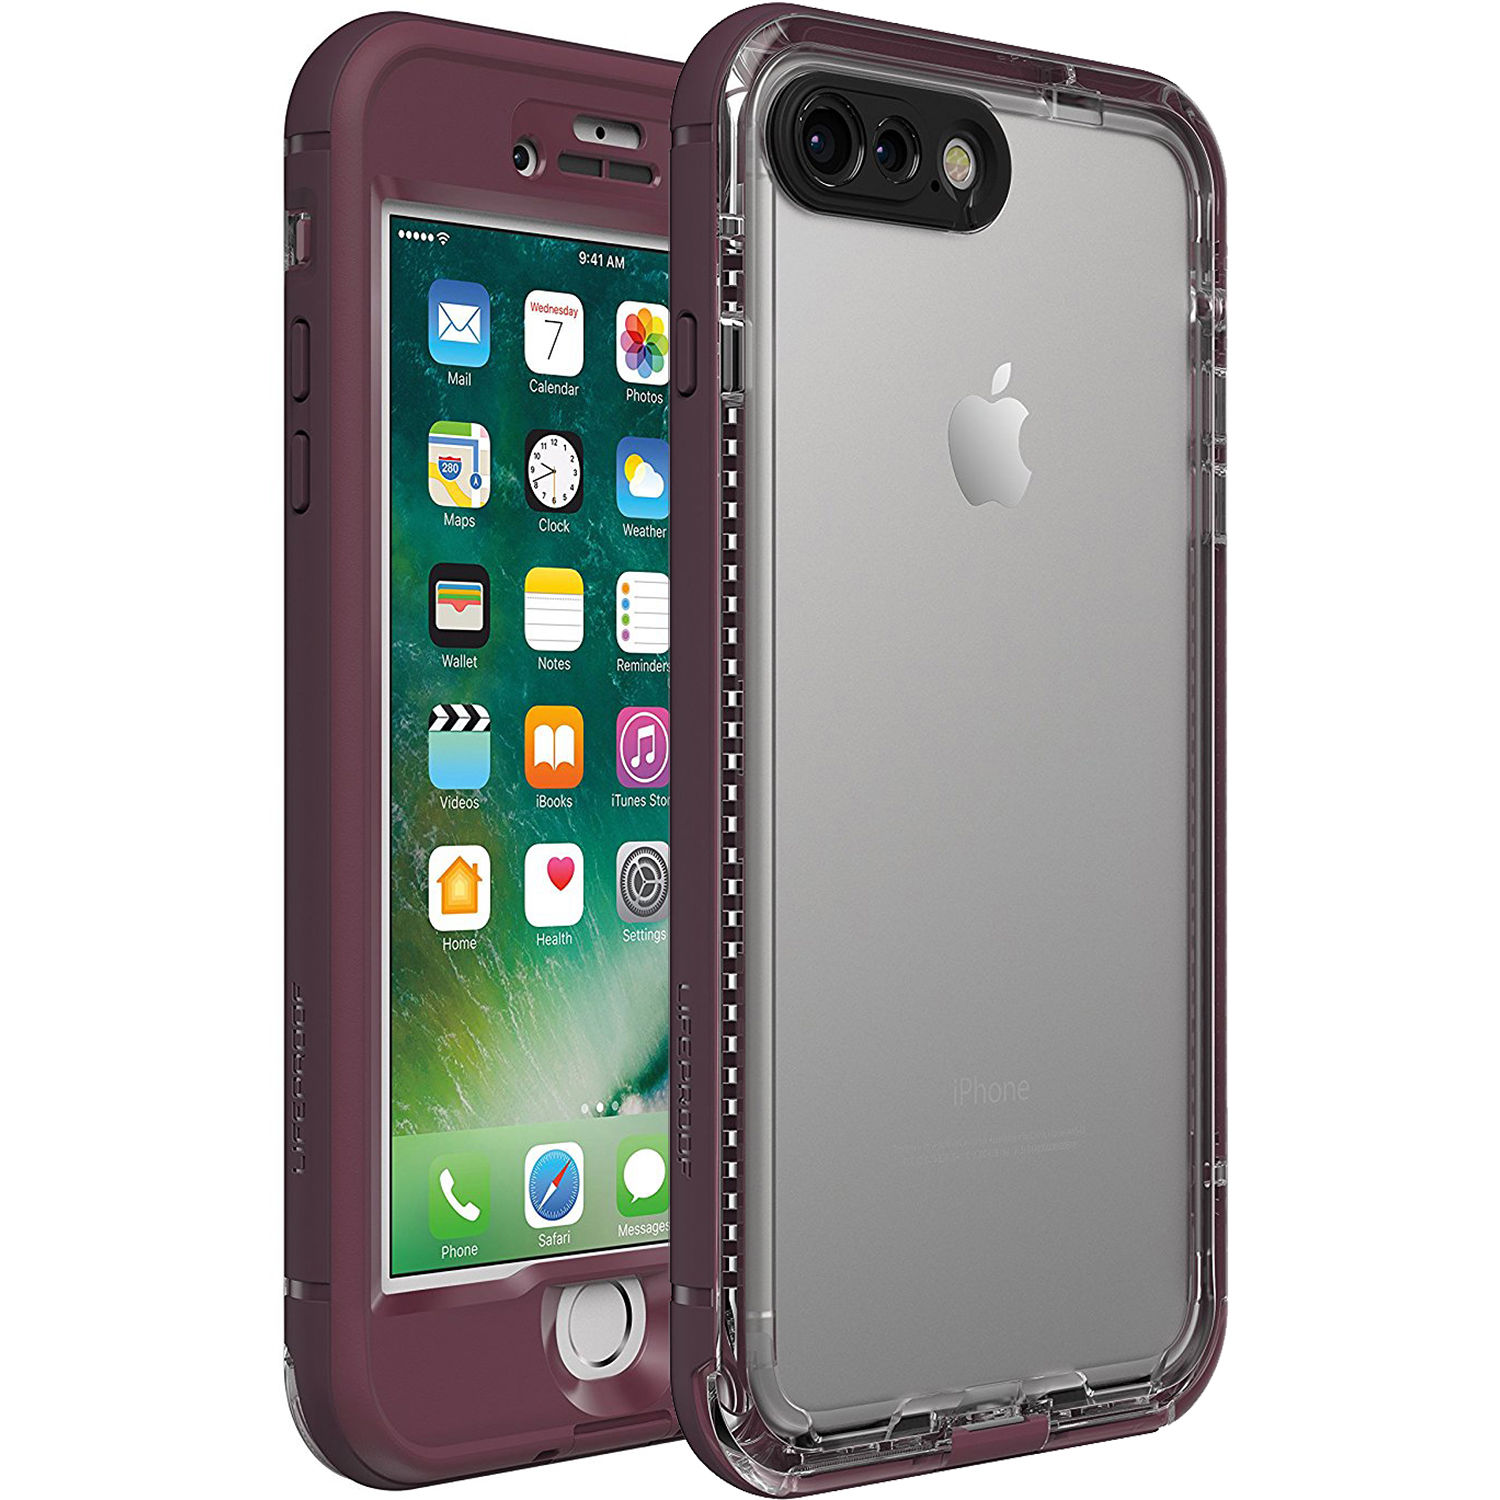 separation shoes 94966 3d626 LifeProof nüüd Case for iPhone 7 Plus (Plum Reef Purple)